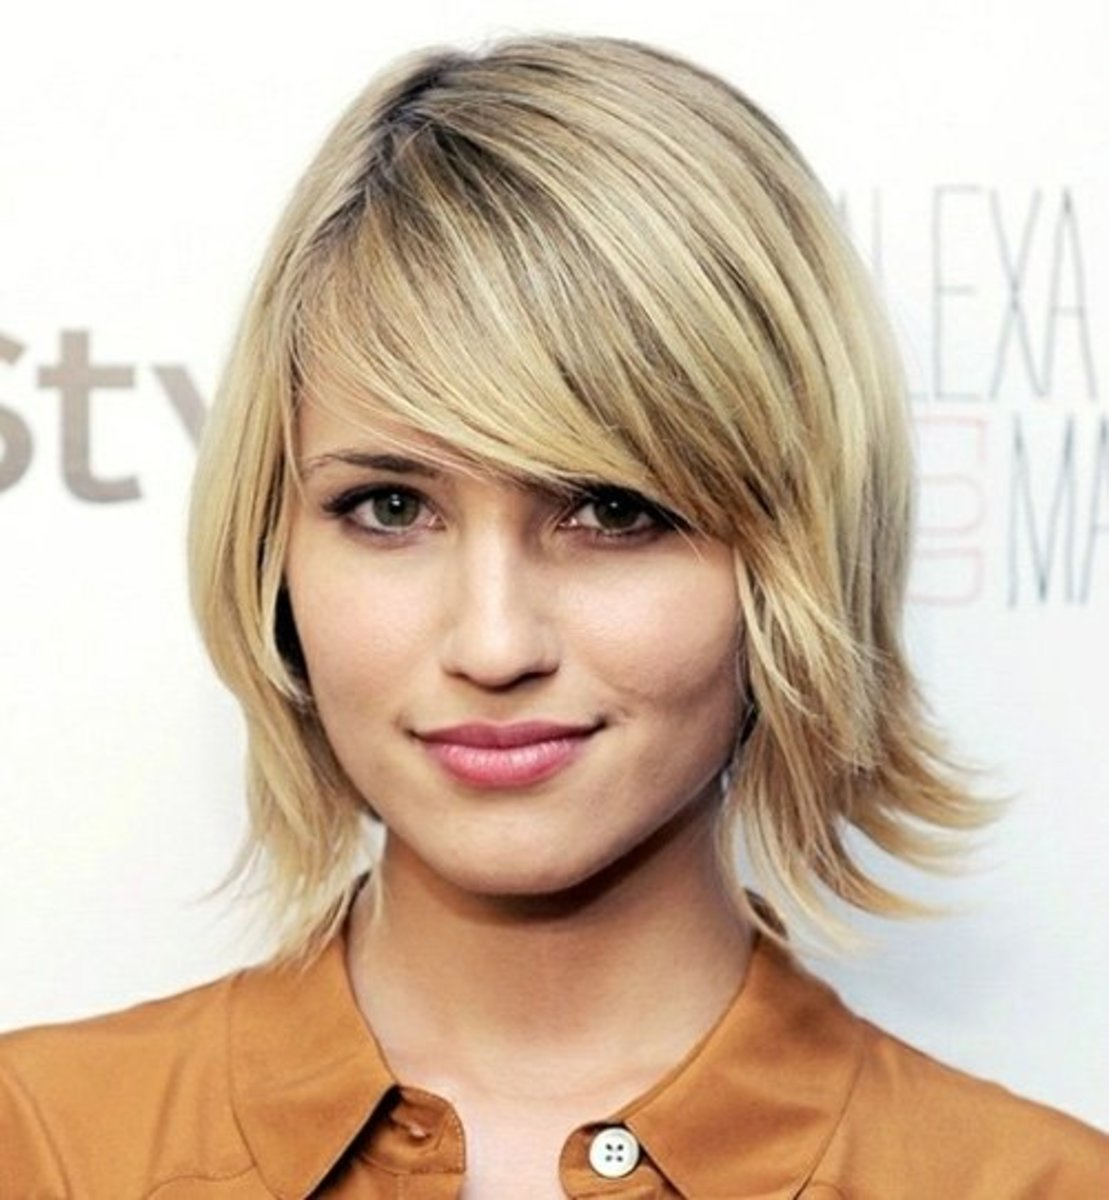 This shaggy bob cut is short, but not too short.